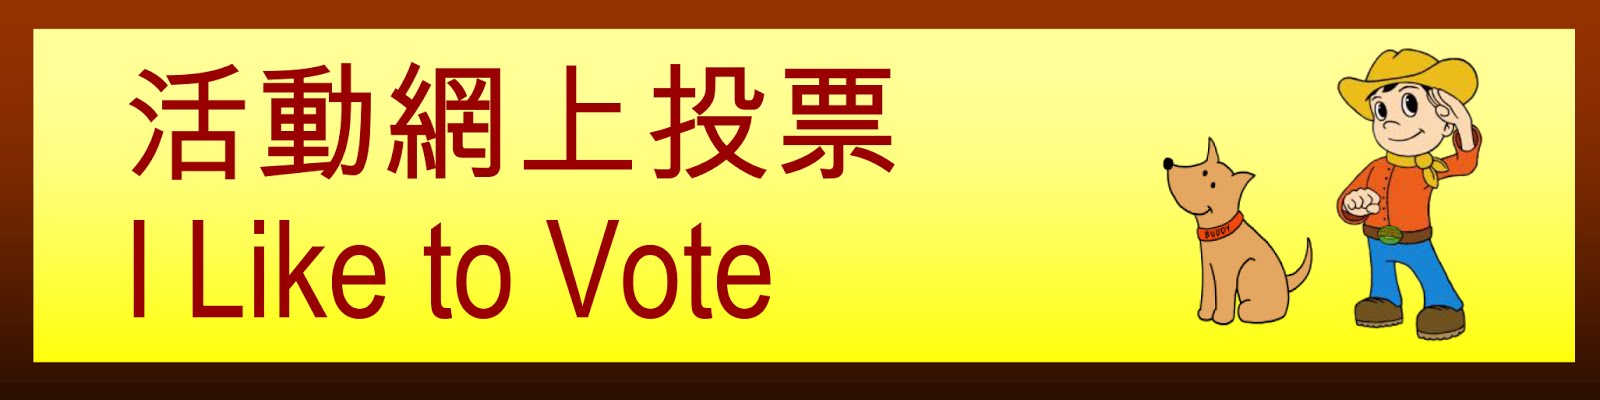 I Like to Vote: Group C組